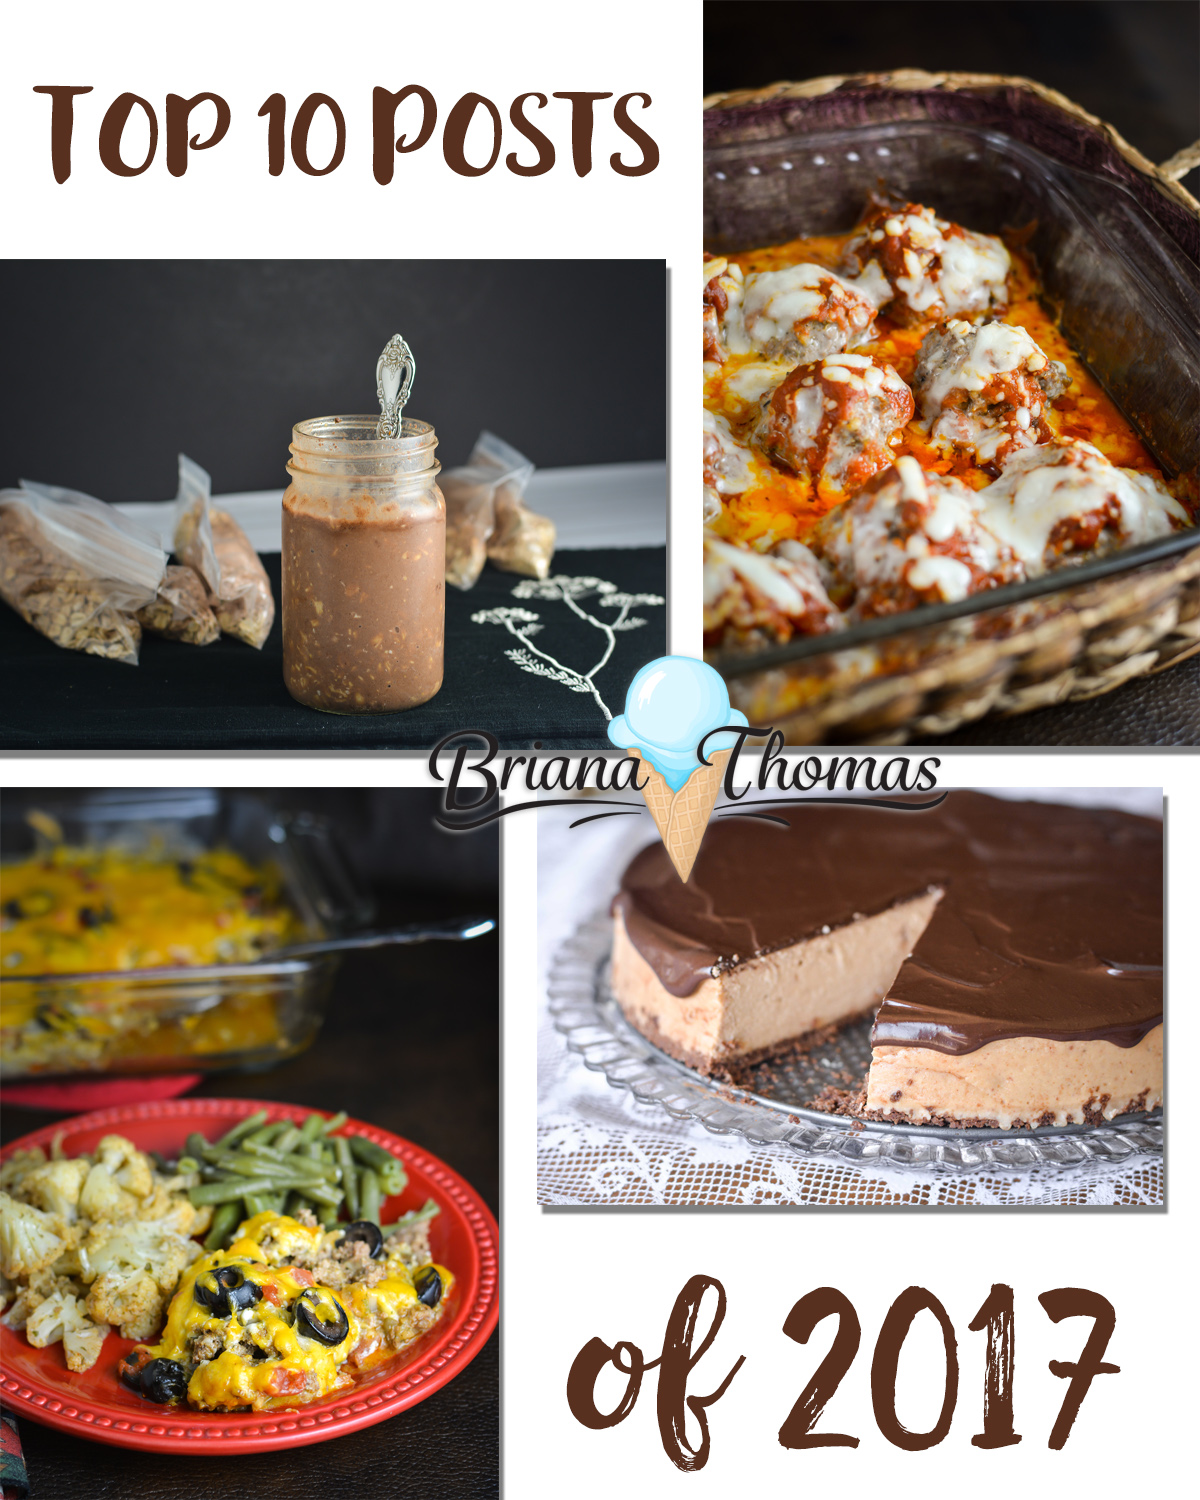 Here's a list of my top 10 posts from 2017 ranked in order of popularity! Can you guess which one is at #1? All Trim Healthy Mama friendly and sugar free!